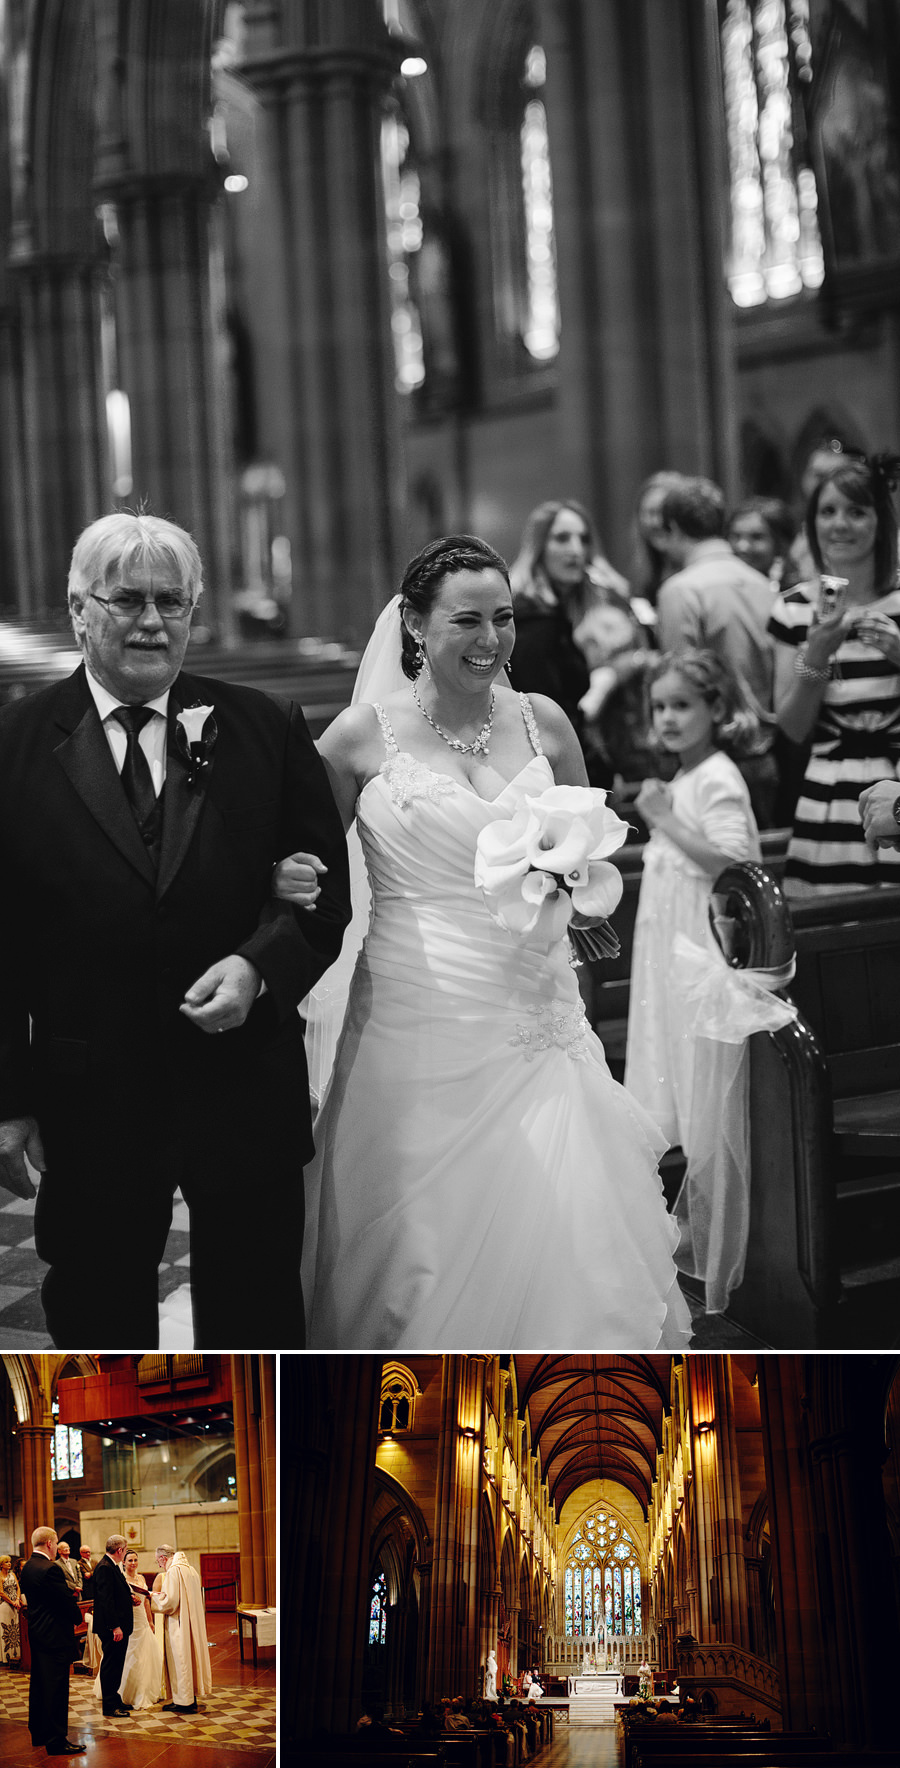 St Marys Wedding Photographer: Bride walking down the aisle